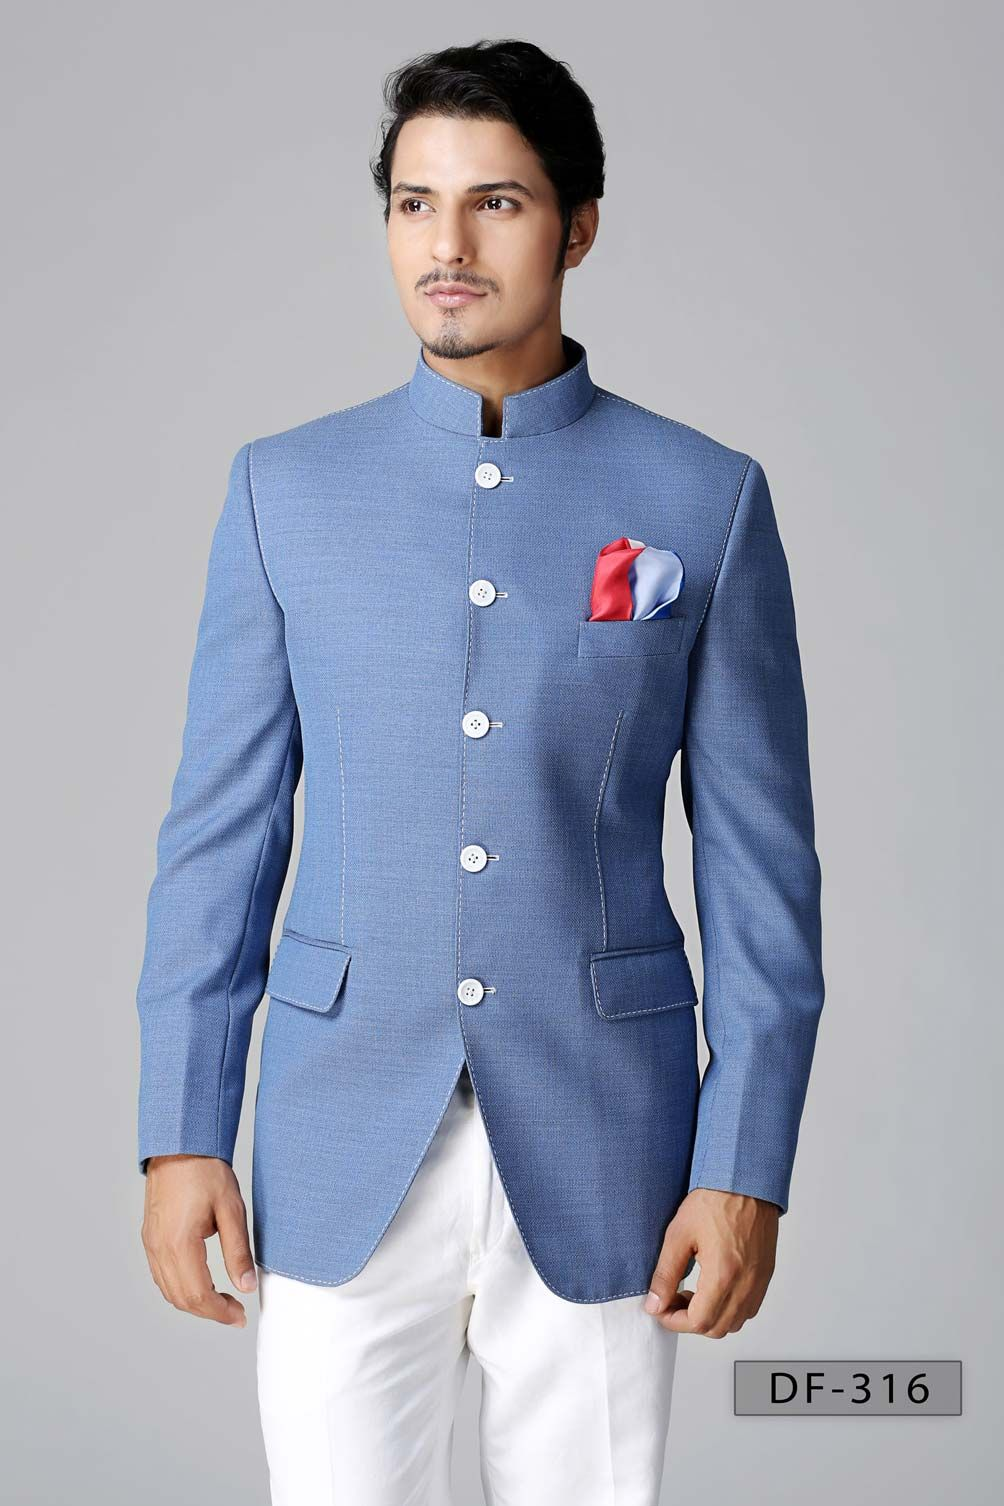 The Mao Suit and the Nehru Jacket Indian men fashion